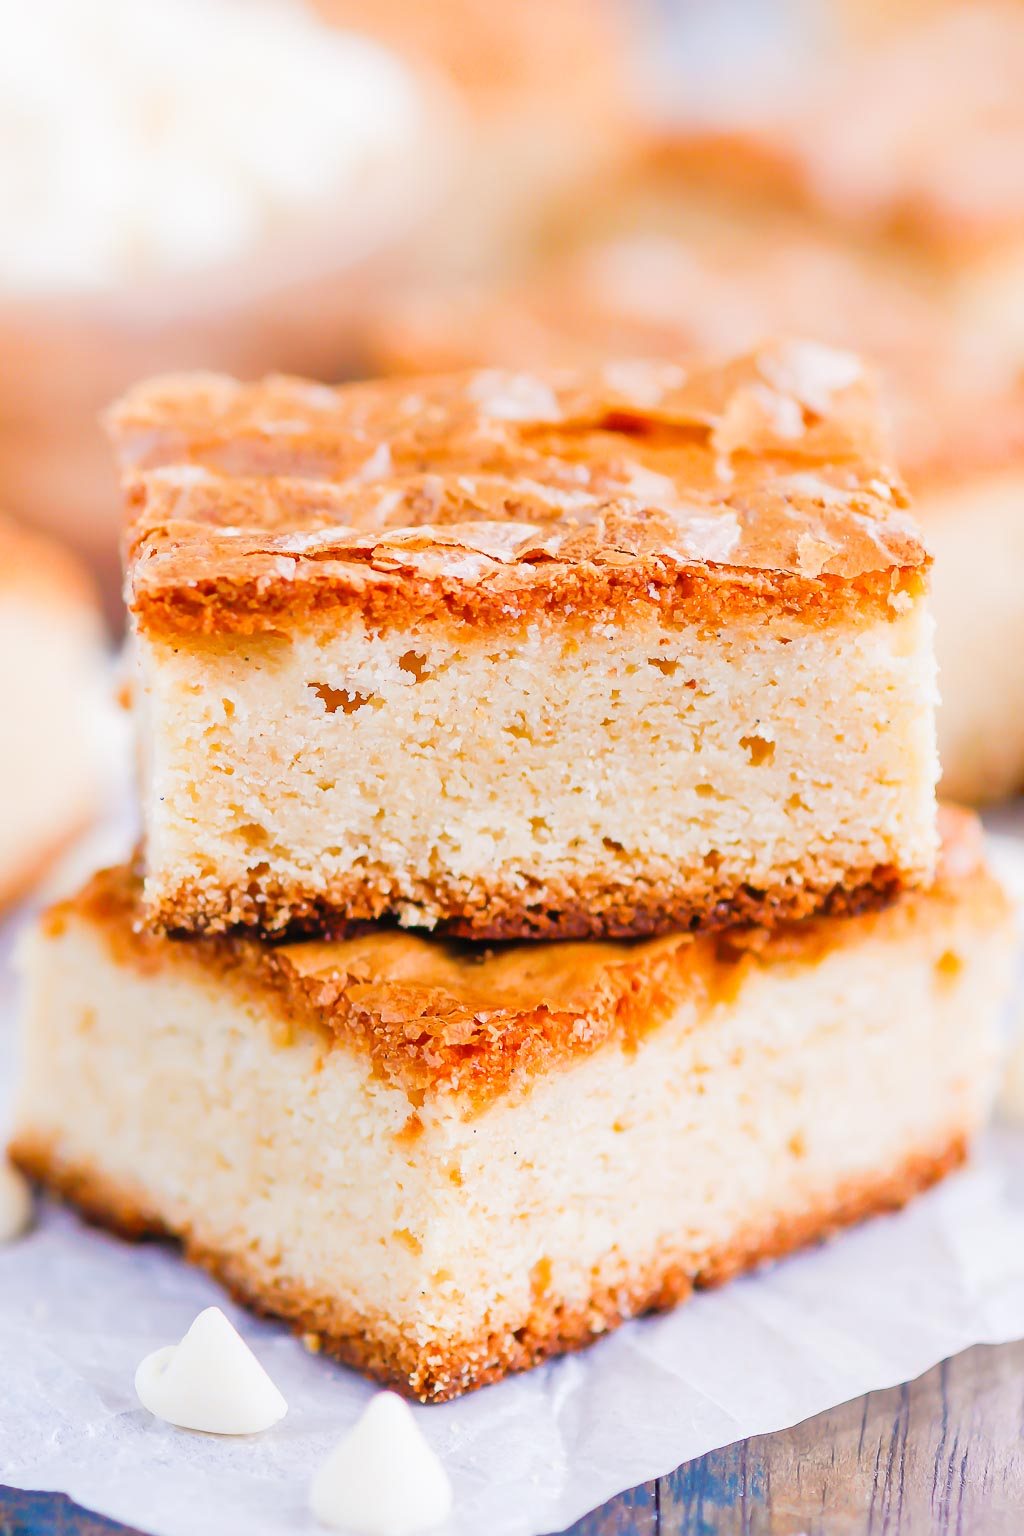 This White Chocolate Blondies Recipe combines the elegance of white chocolate with rich vanilla to bring you a delightfully sweet treat that is ready for the oven in minutes and baked in just half an hour. Serve this recipe with a hot cup of coffee for the perfect treat on a cold day! #blondies #whitechocolate #whitechocolateblondies #blondierecipe #whitechocolatedessert #dessert #easydessert